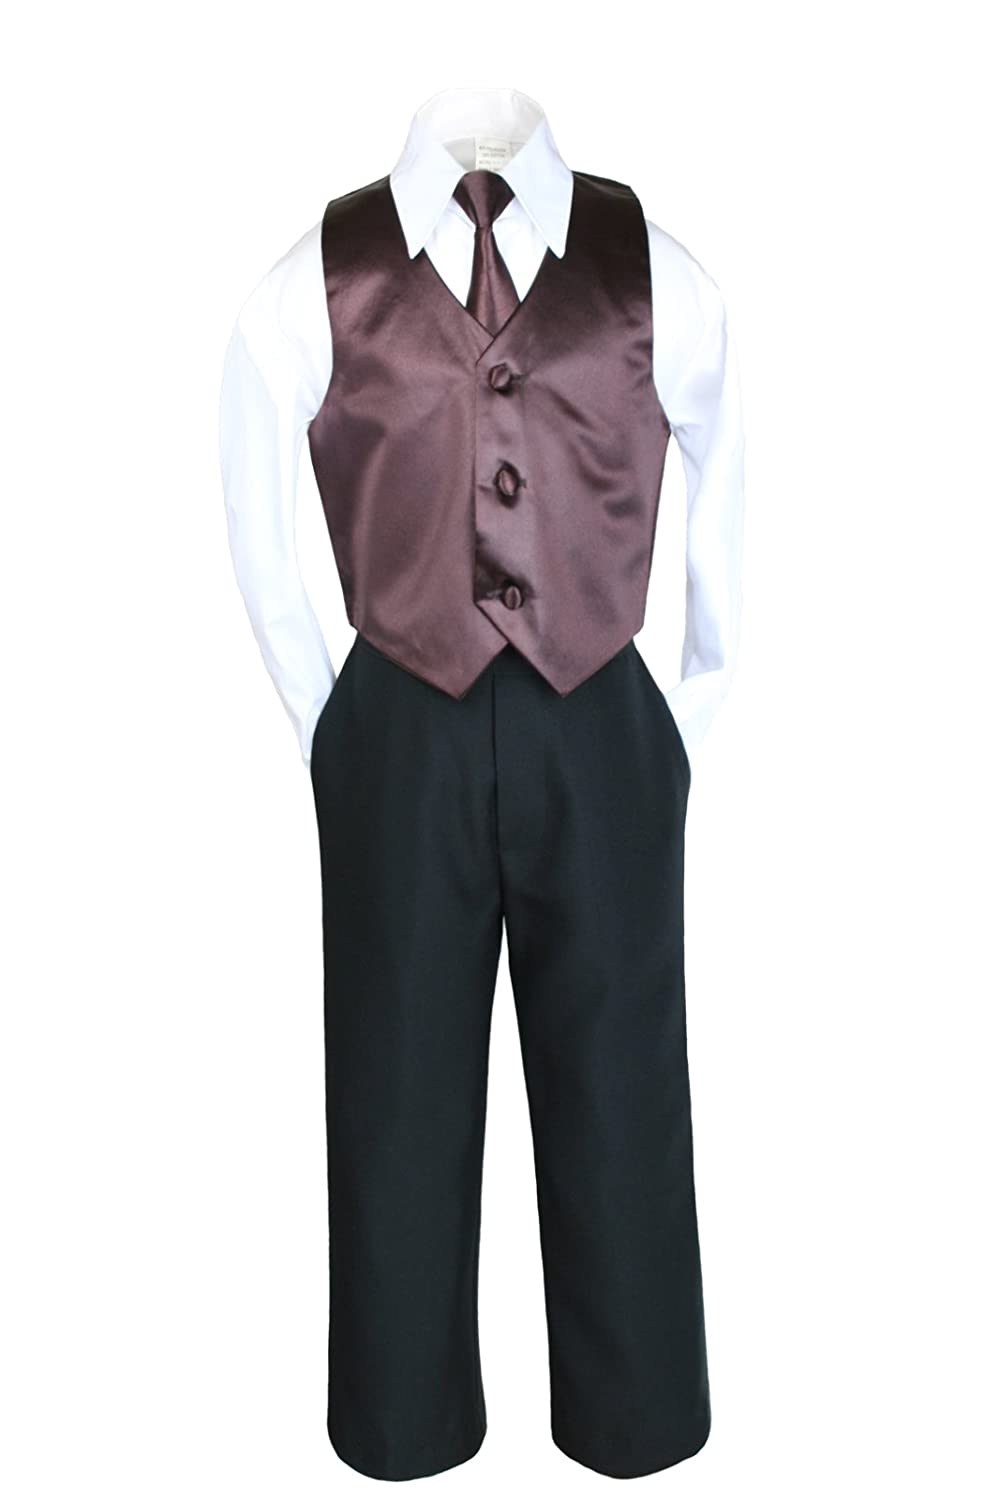 4pc Formal Wedding Boys Vest Set Suits Brown Necktie from 0 to 7 years (3T)